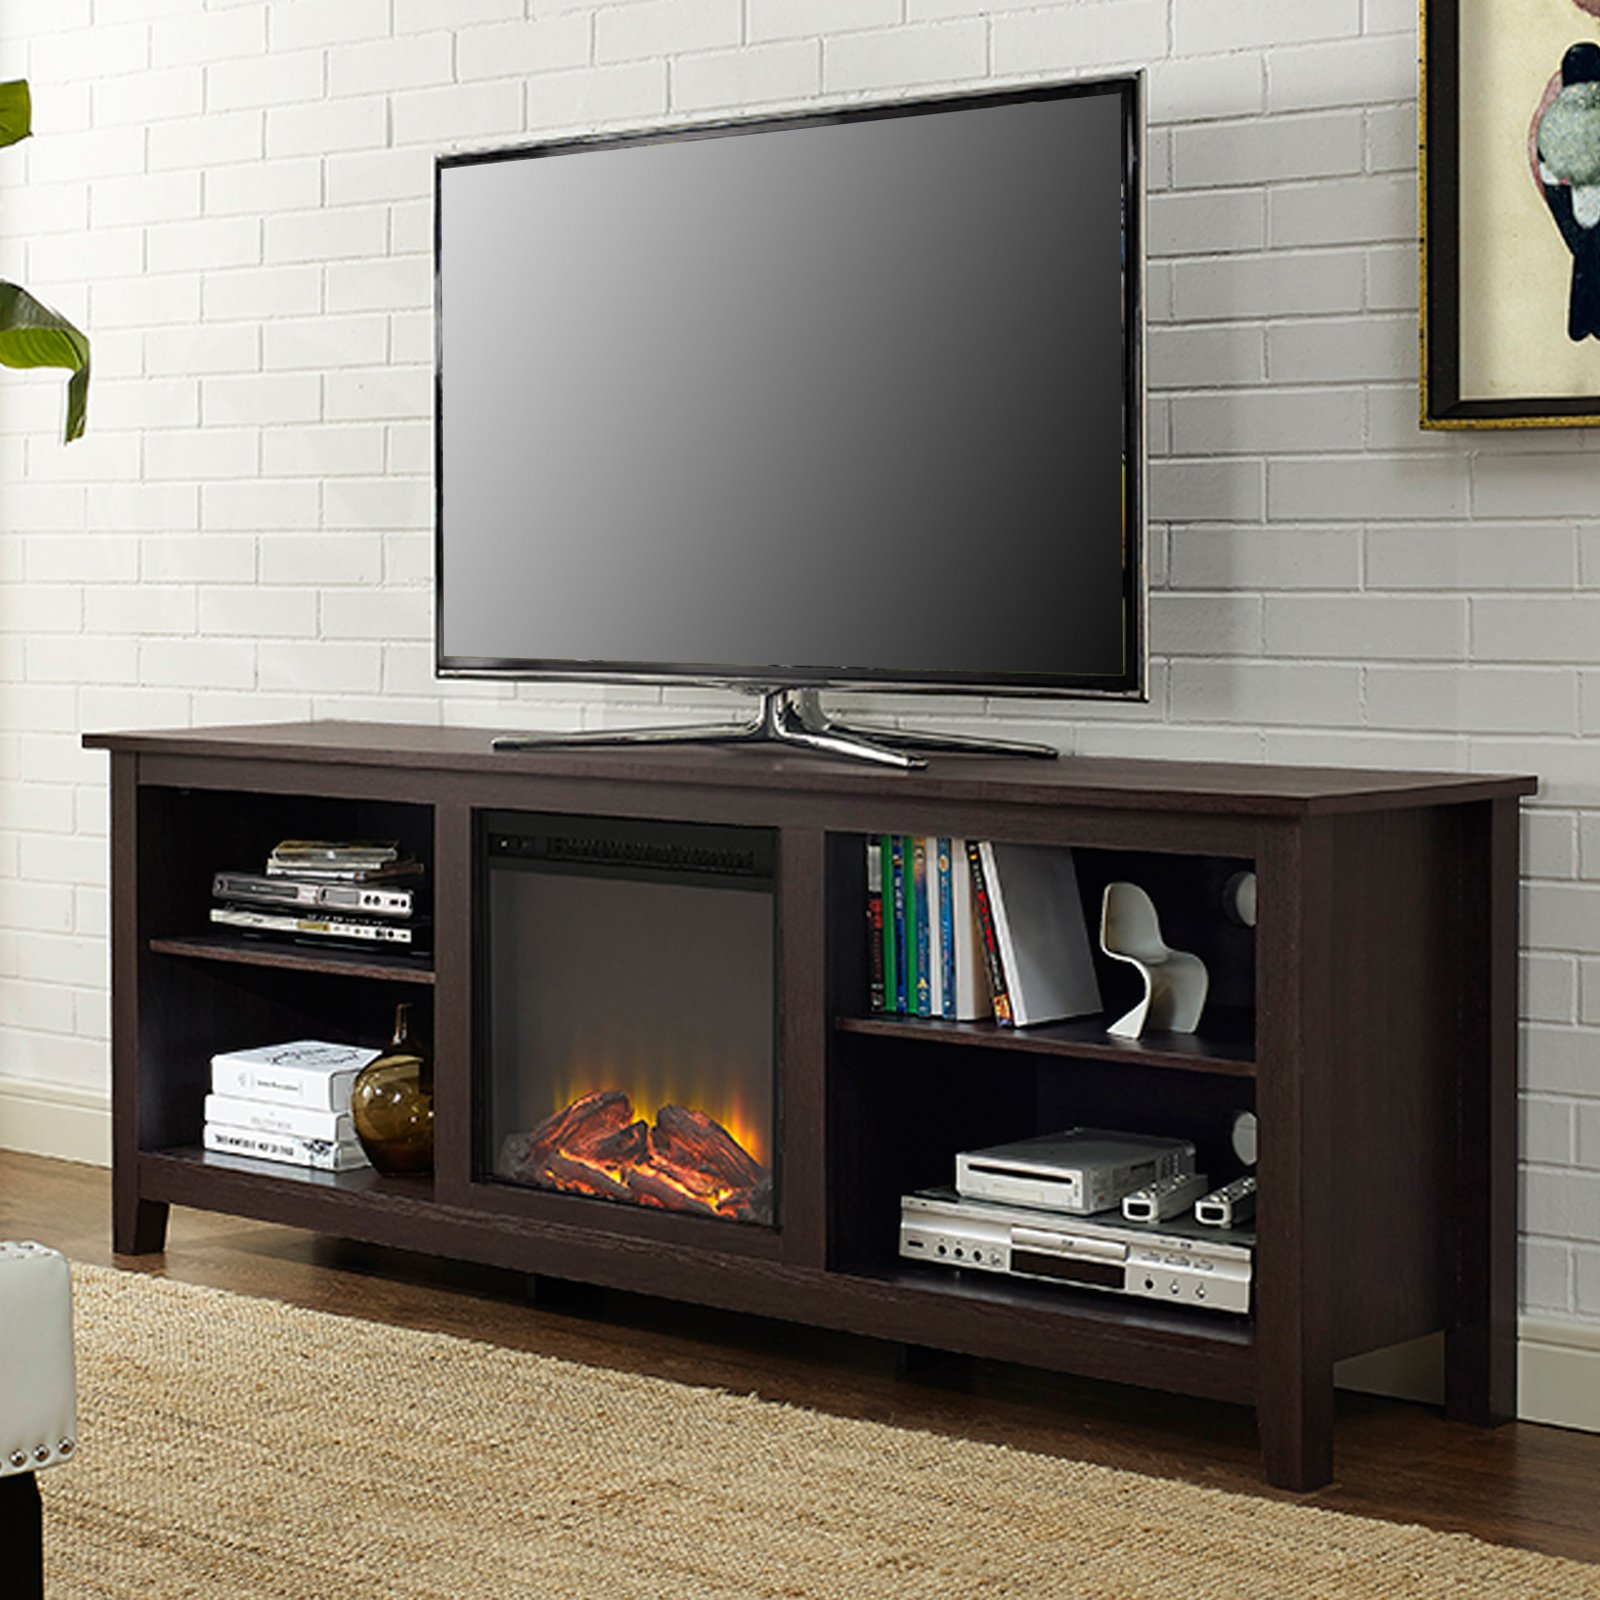 Belham Living Richardson 70 in. Fireplace TV Stand